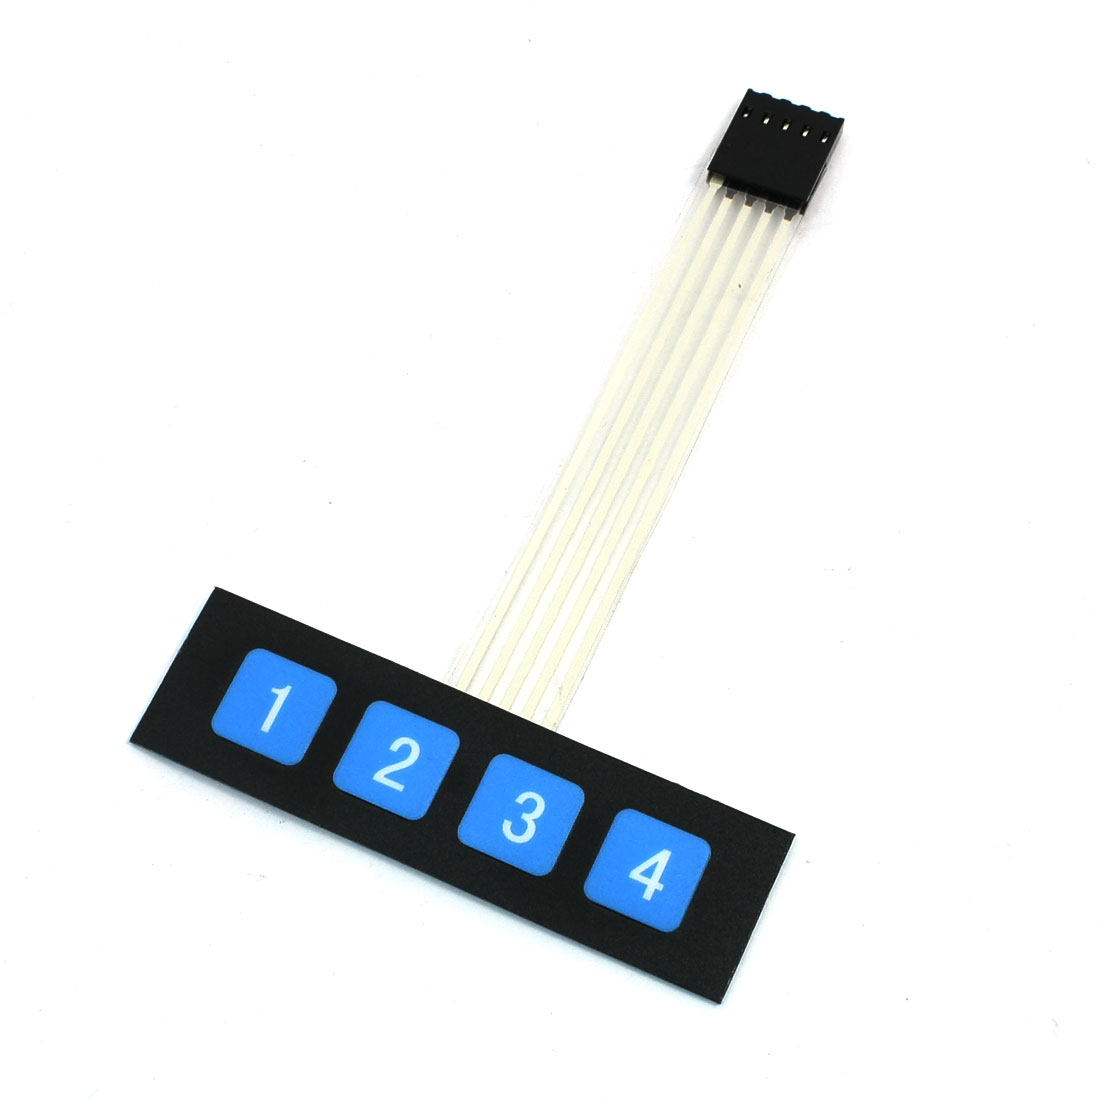 1x4 4 Blue Key Matrix Membrane Switch Plastic Keypad Keyboard